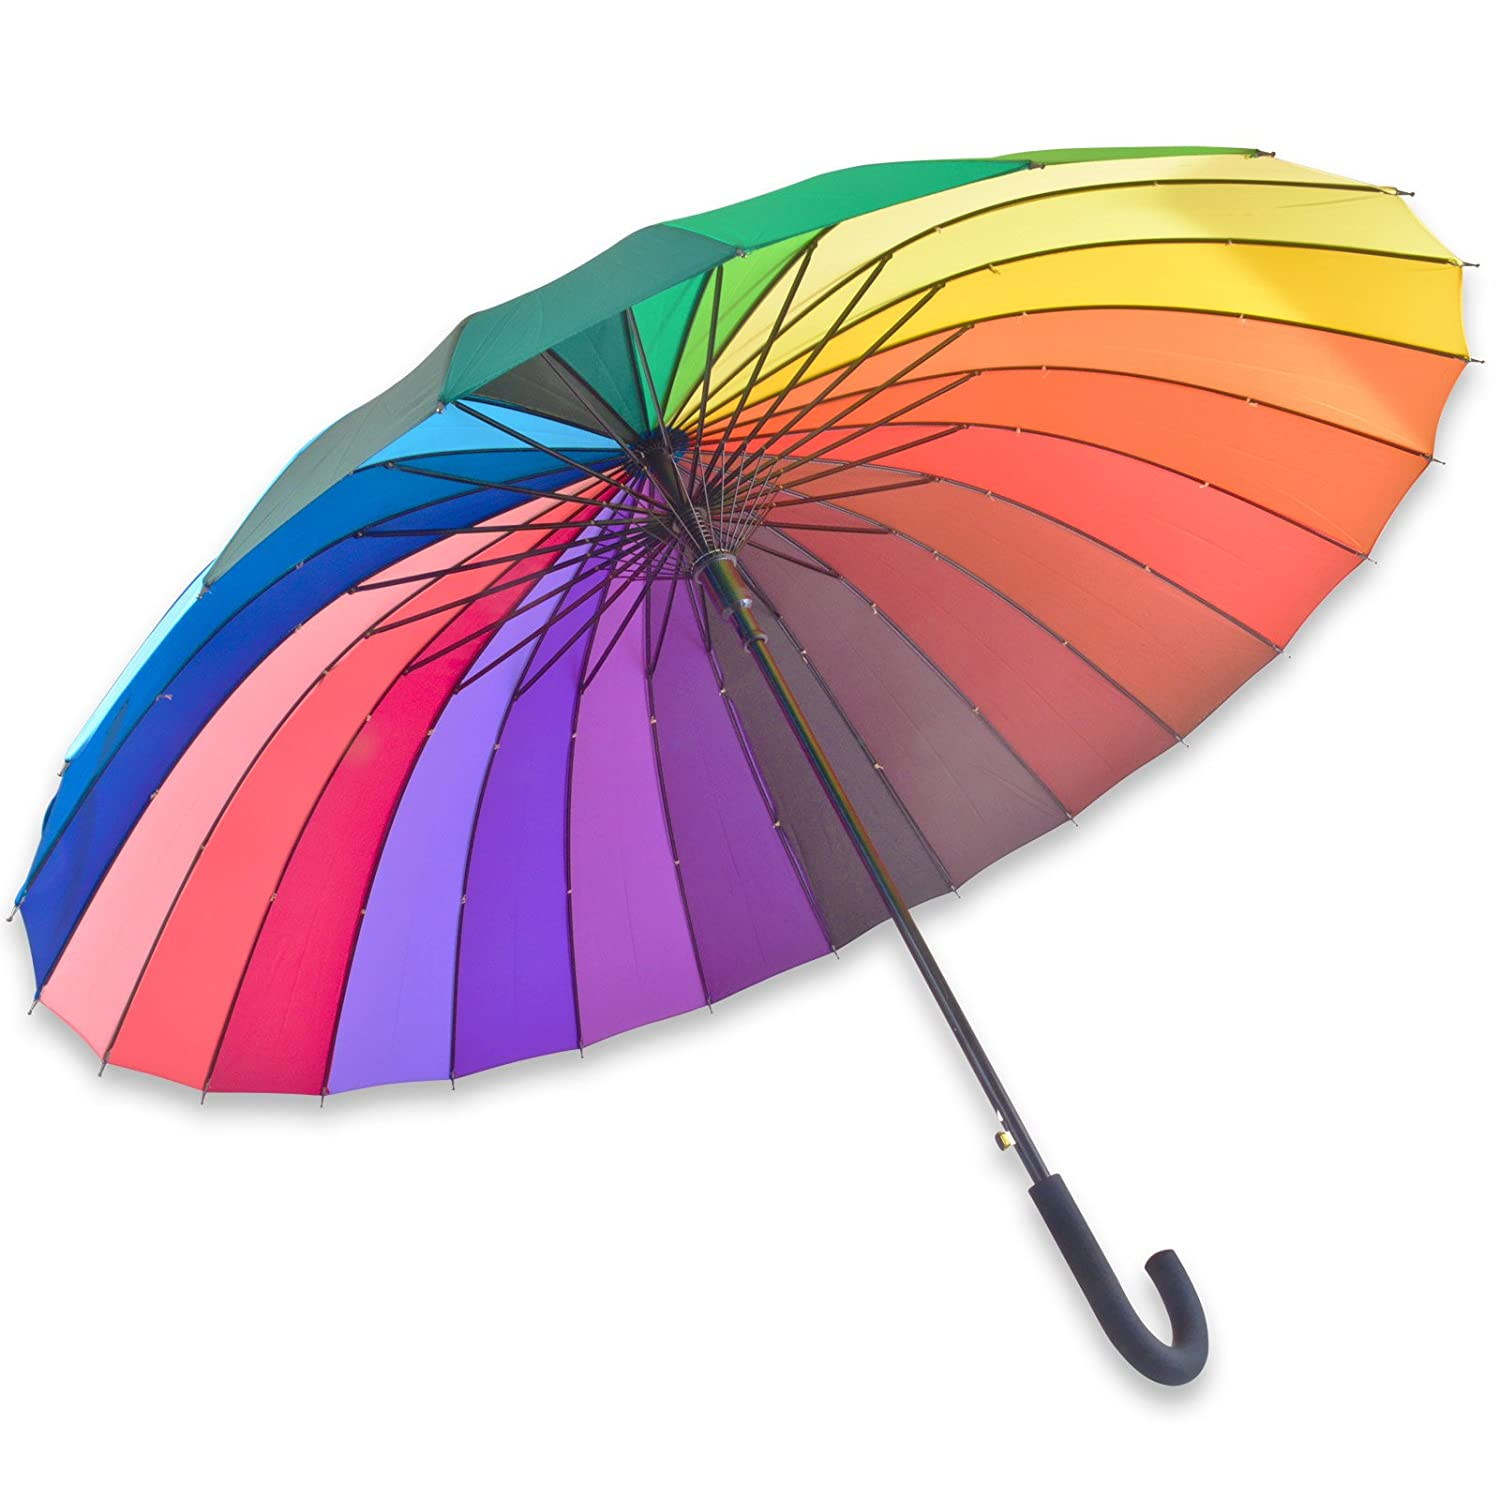 Large Canopy Deluxe Automatic Opening 24 Rib Rainbow Umbrella Strong And Windproof Ultra Durable